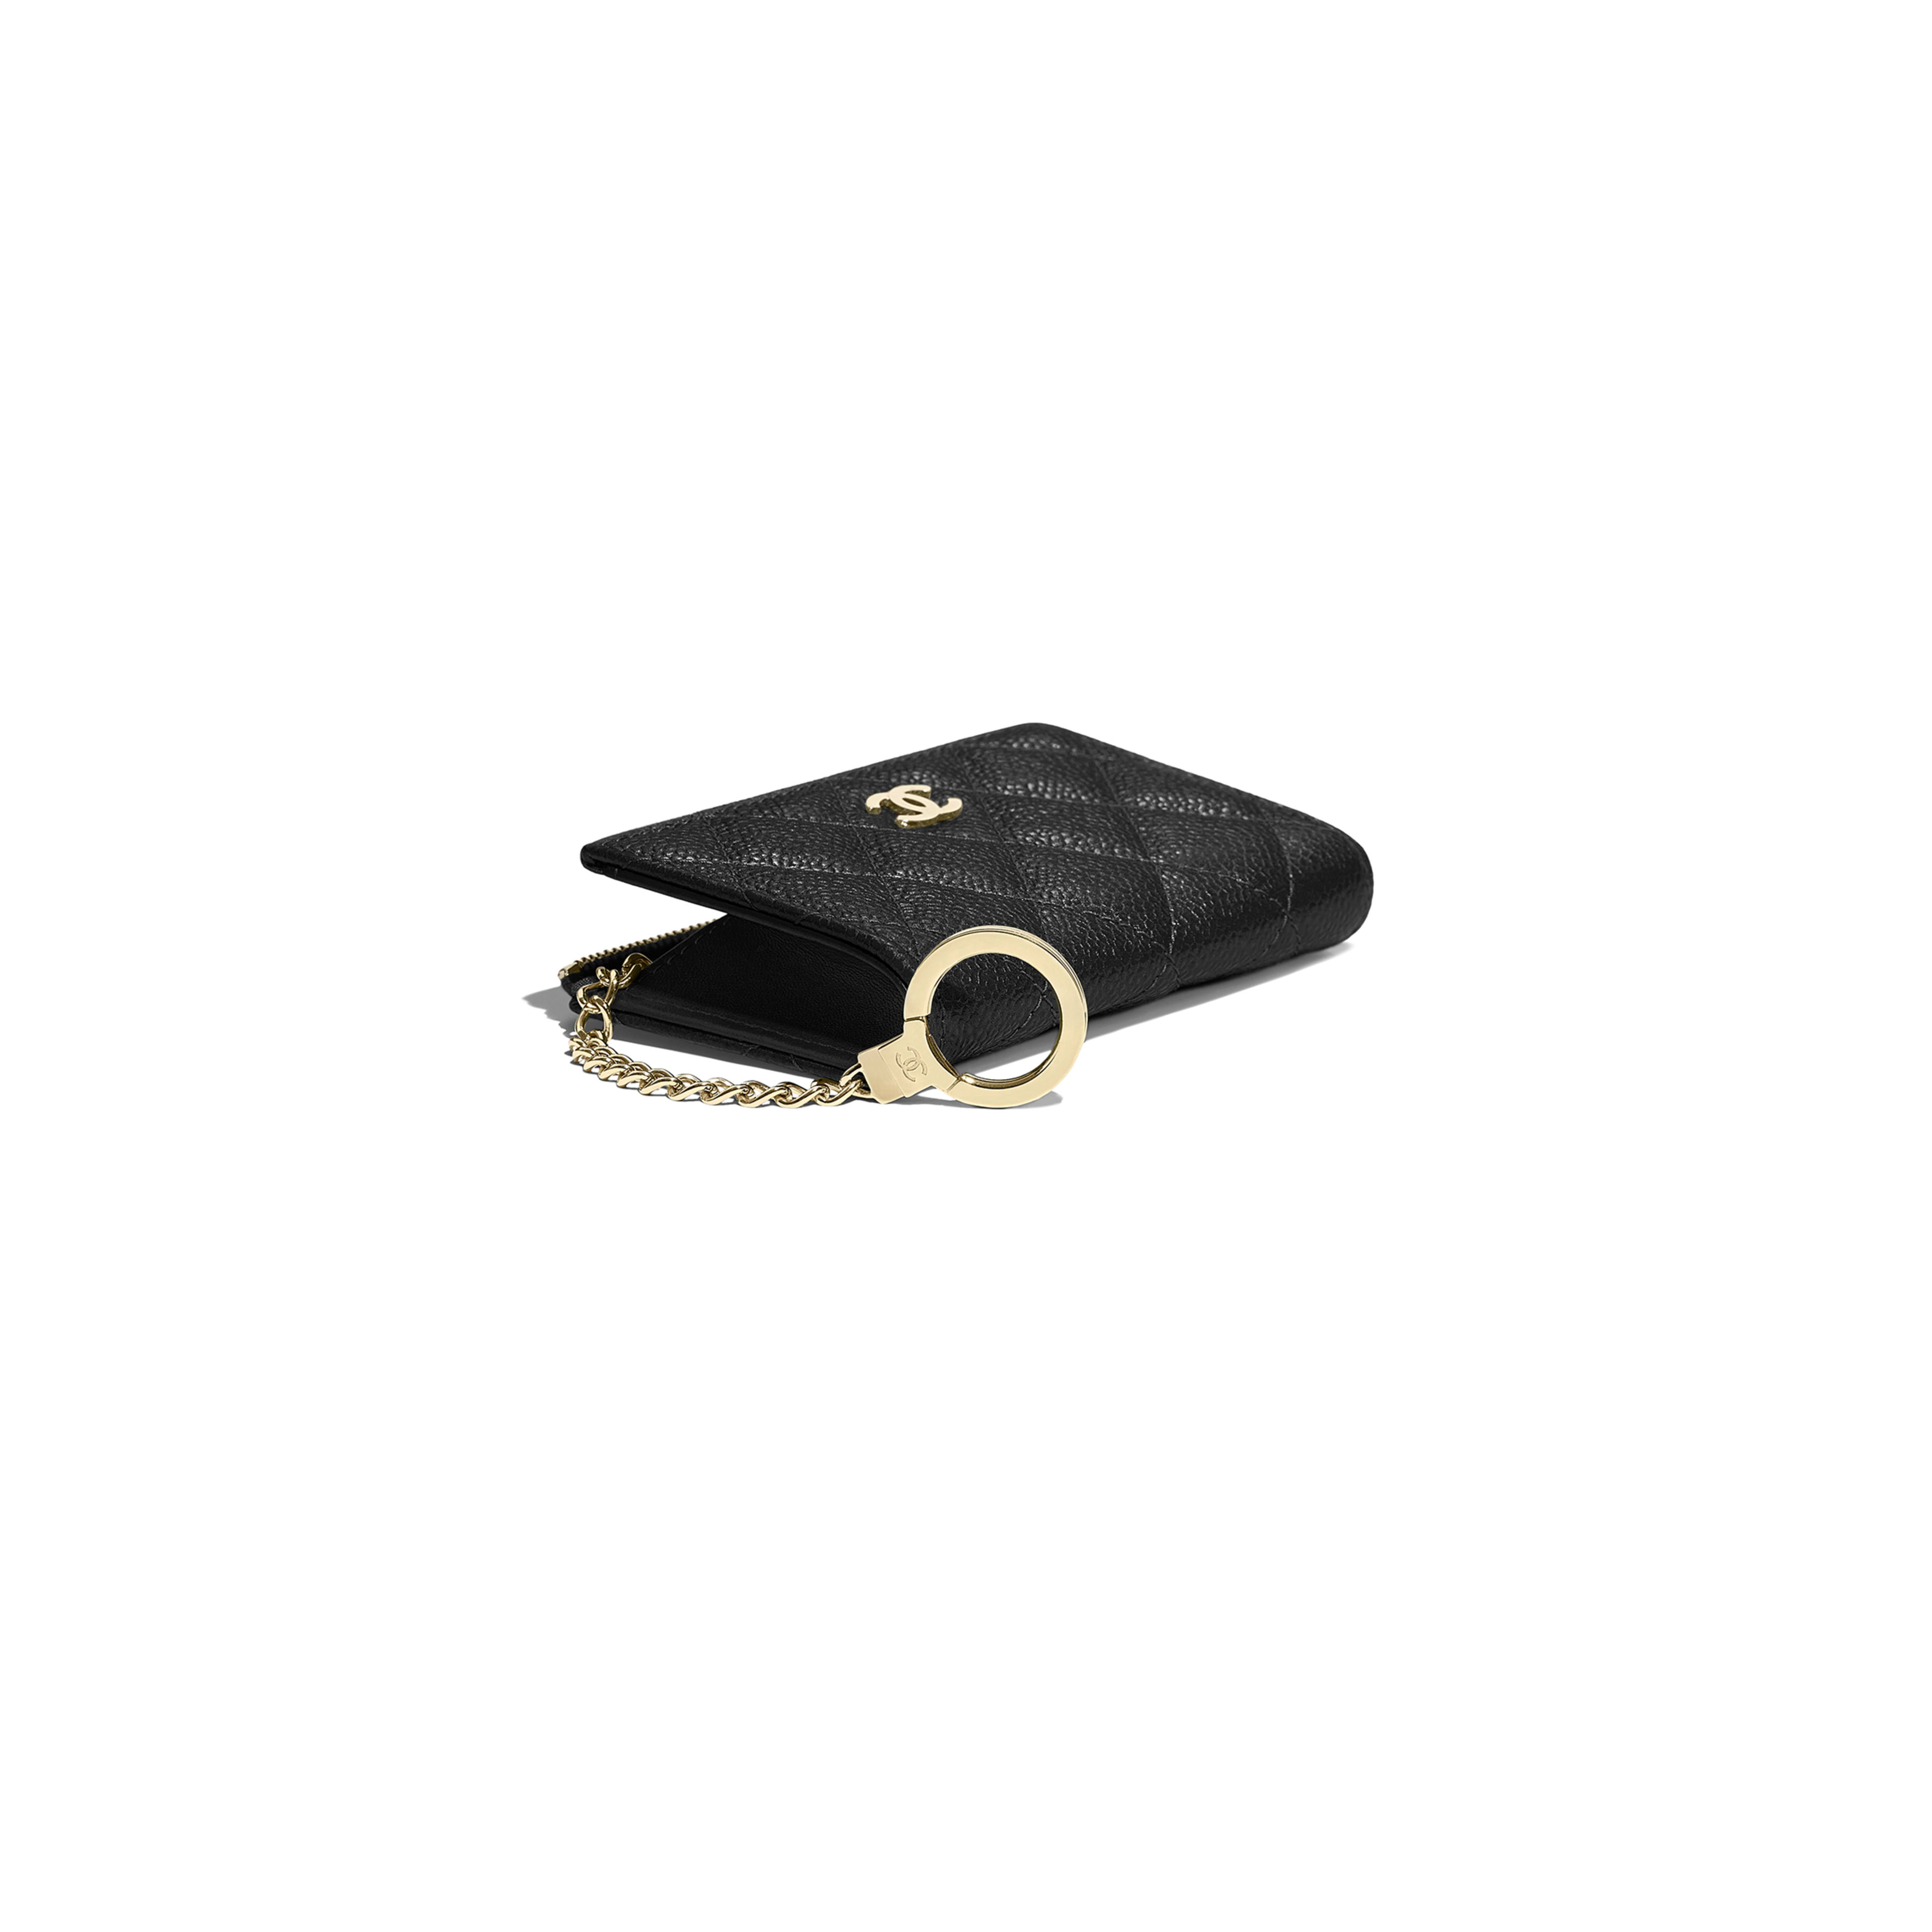 Classic Zipped Key Holder - Black - Grained Calfskin & Gold-Tone Metal - Other view - see full sized version